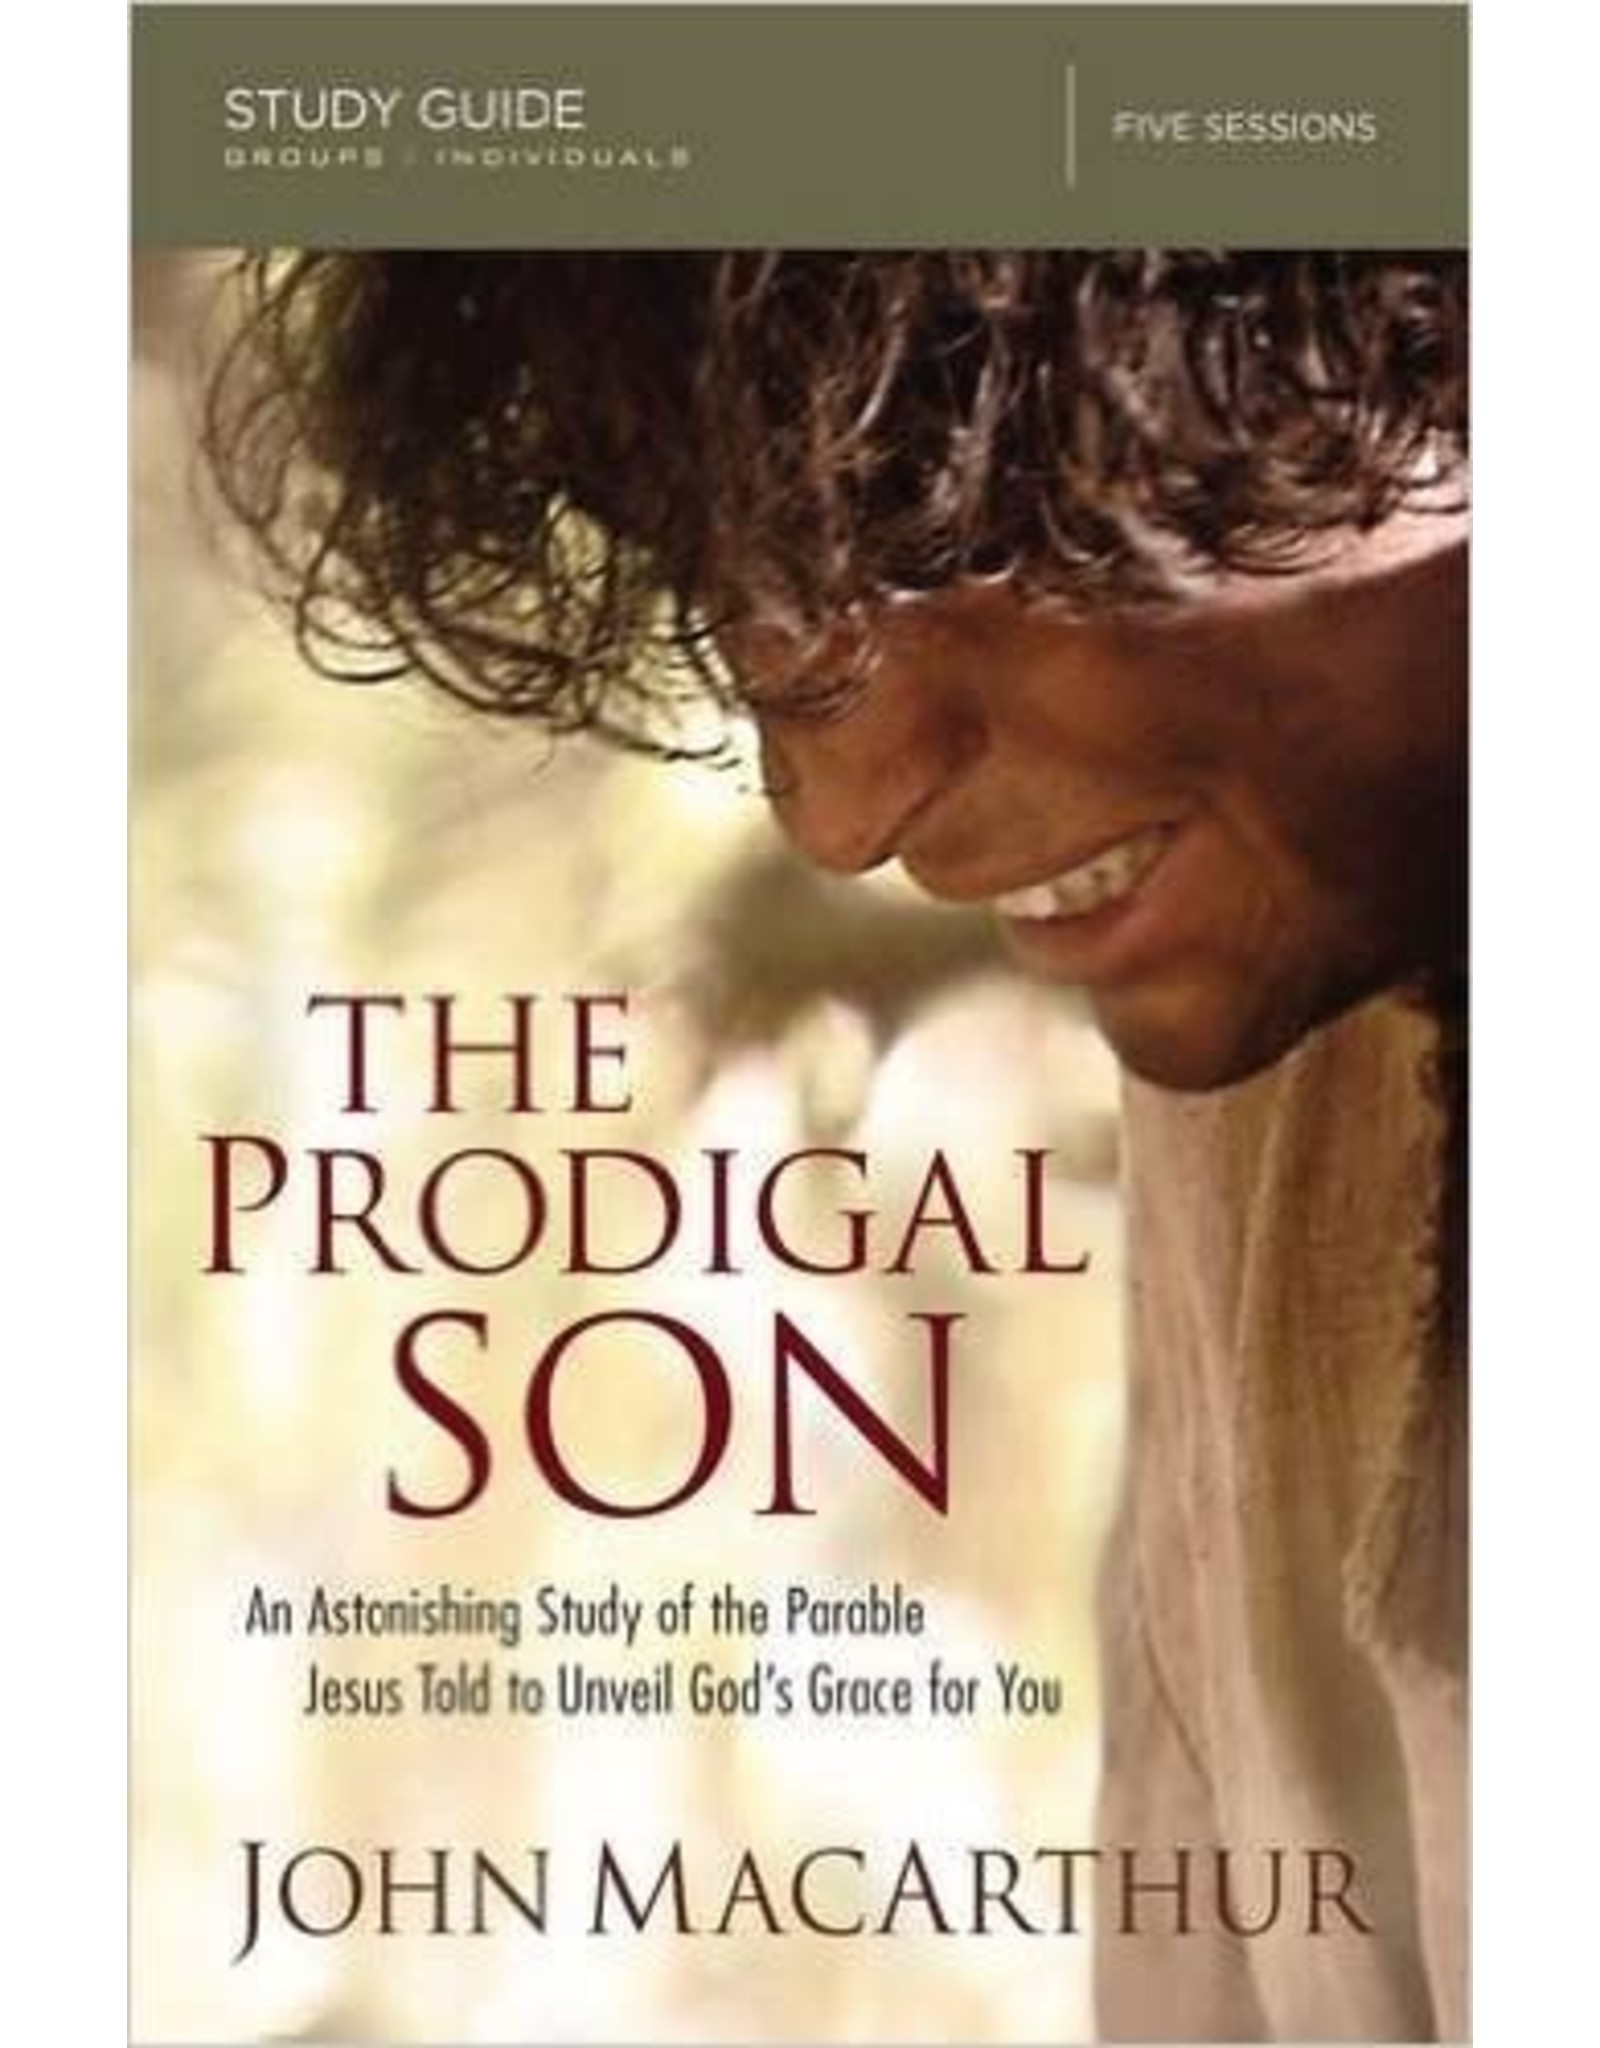 Harper Collins / Thomas Nelson / Zondervan The Prodigal Son (Study Guide): An Astonishing Study of the Parable Jesus Told to Unveil God's Grace for You